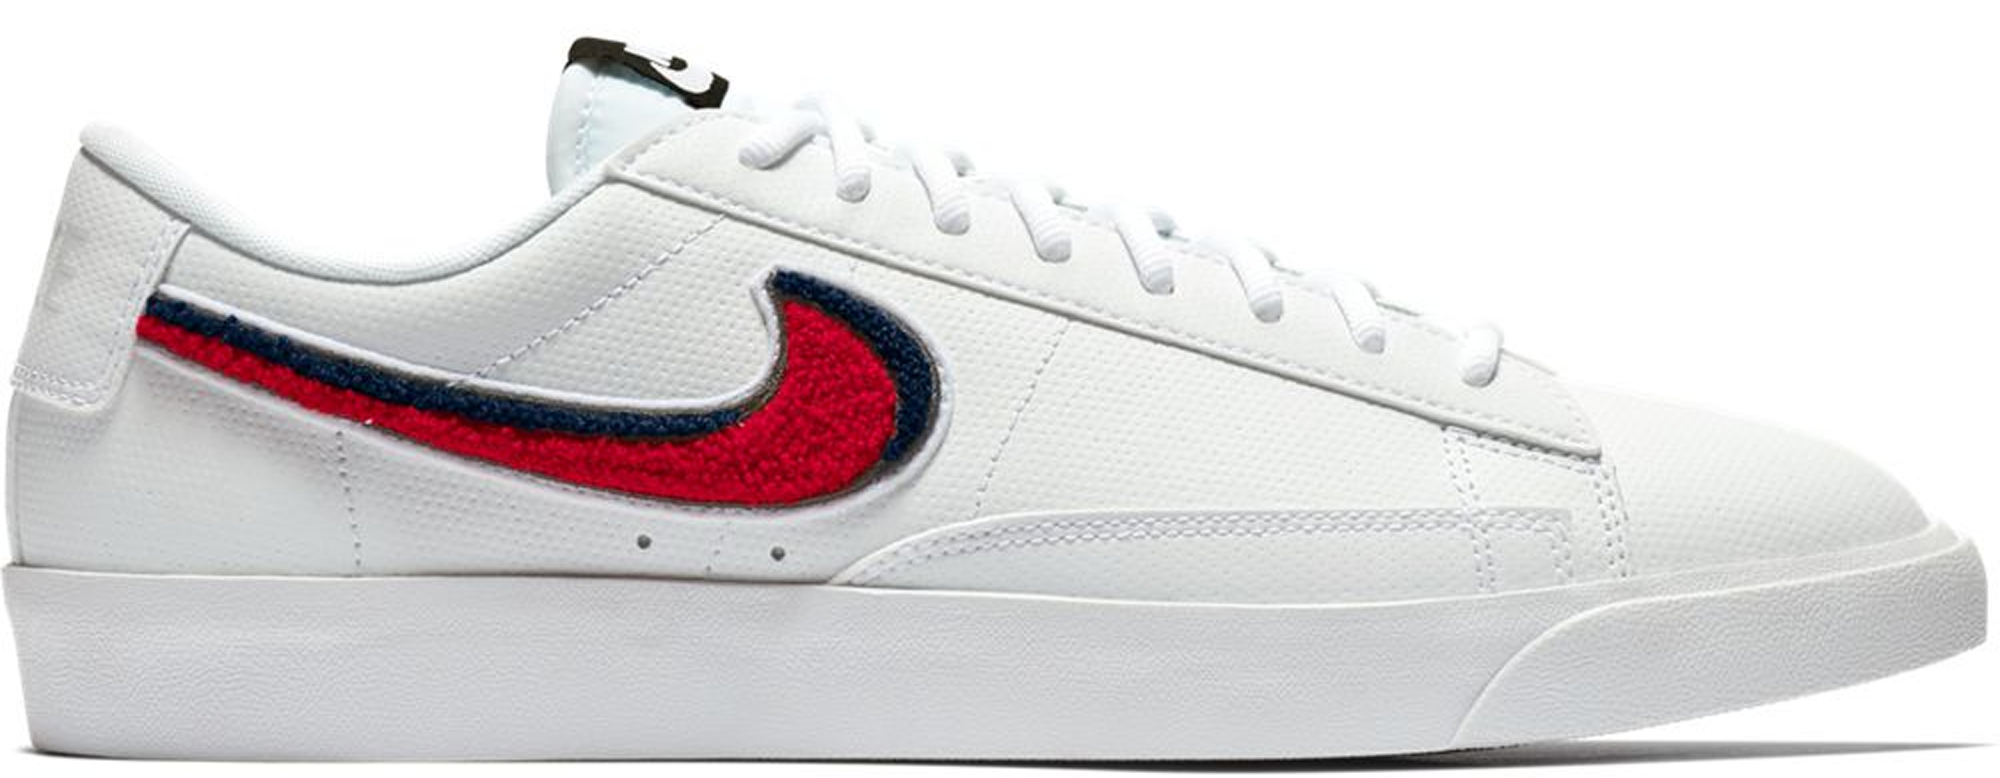 nike blazer low white and red